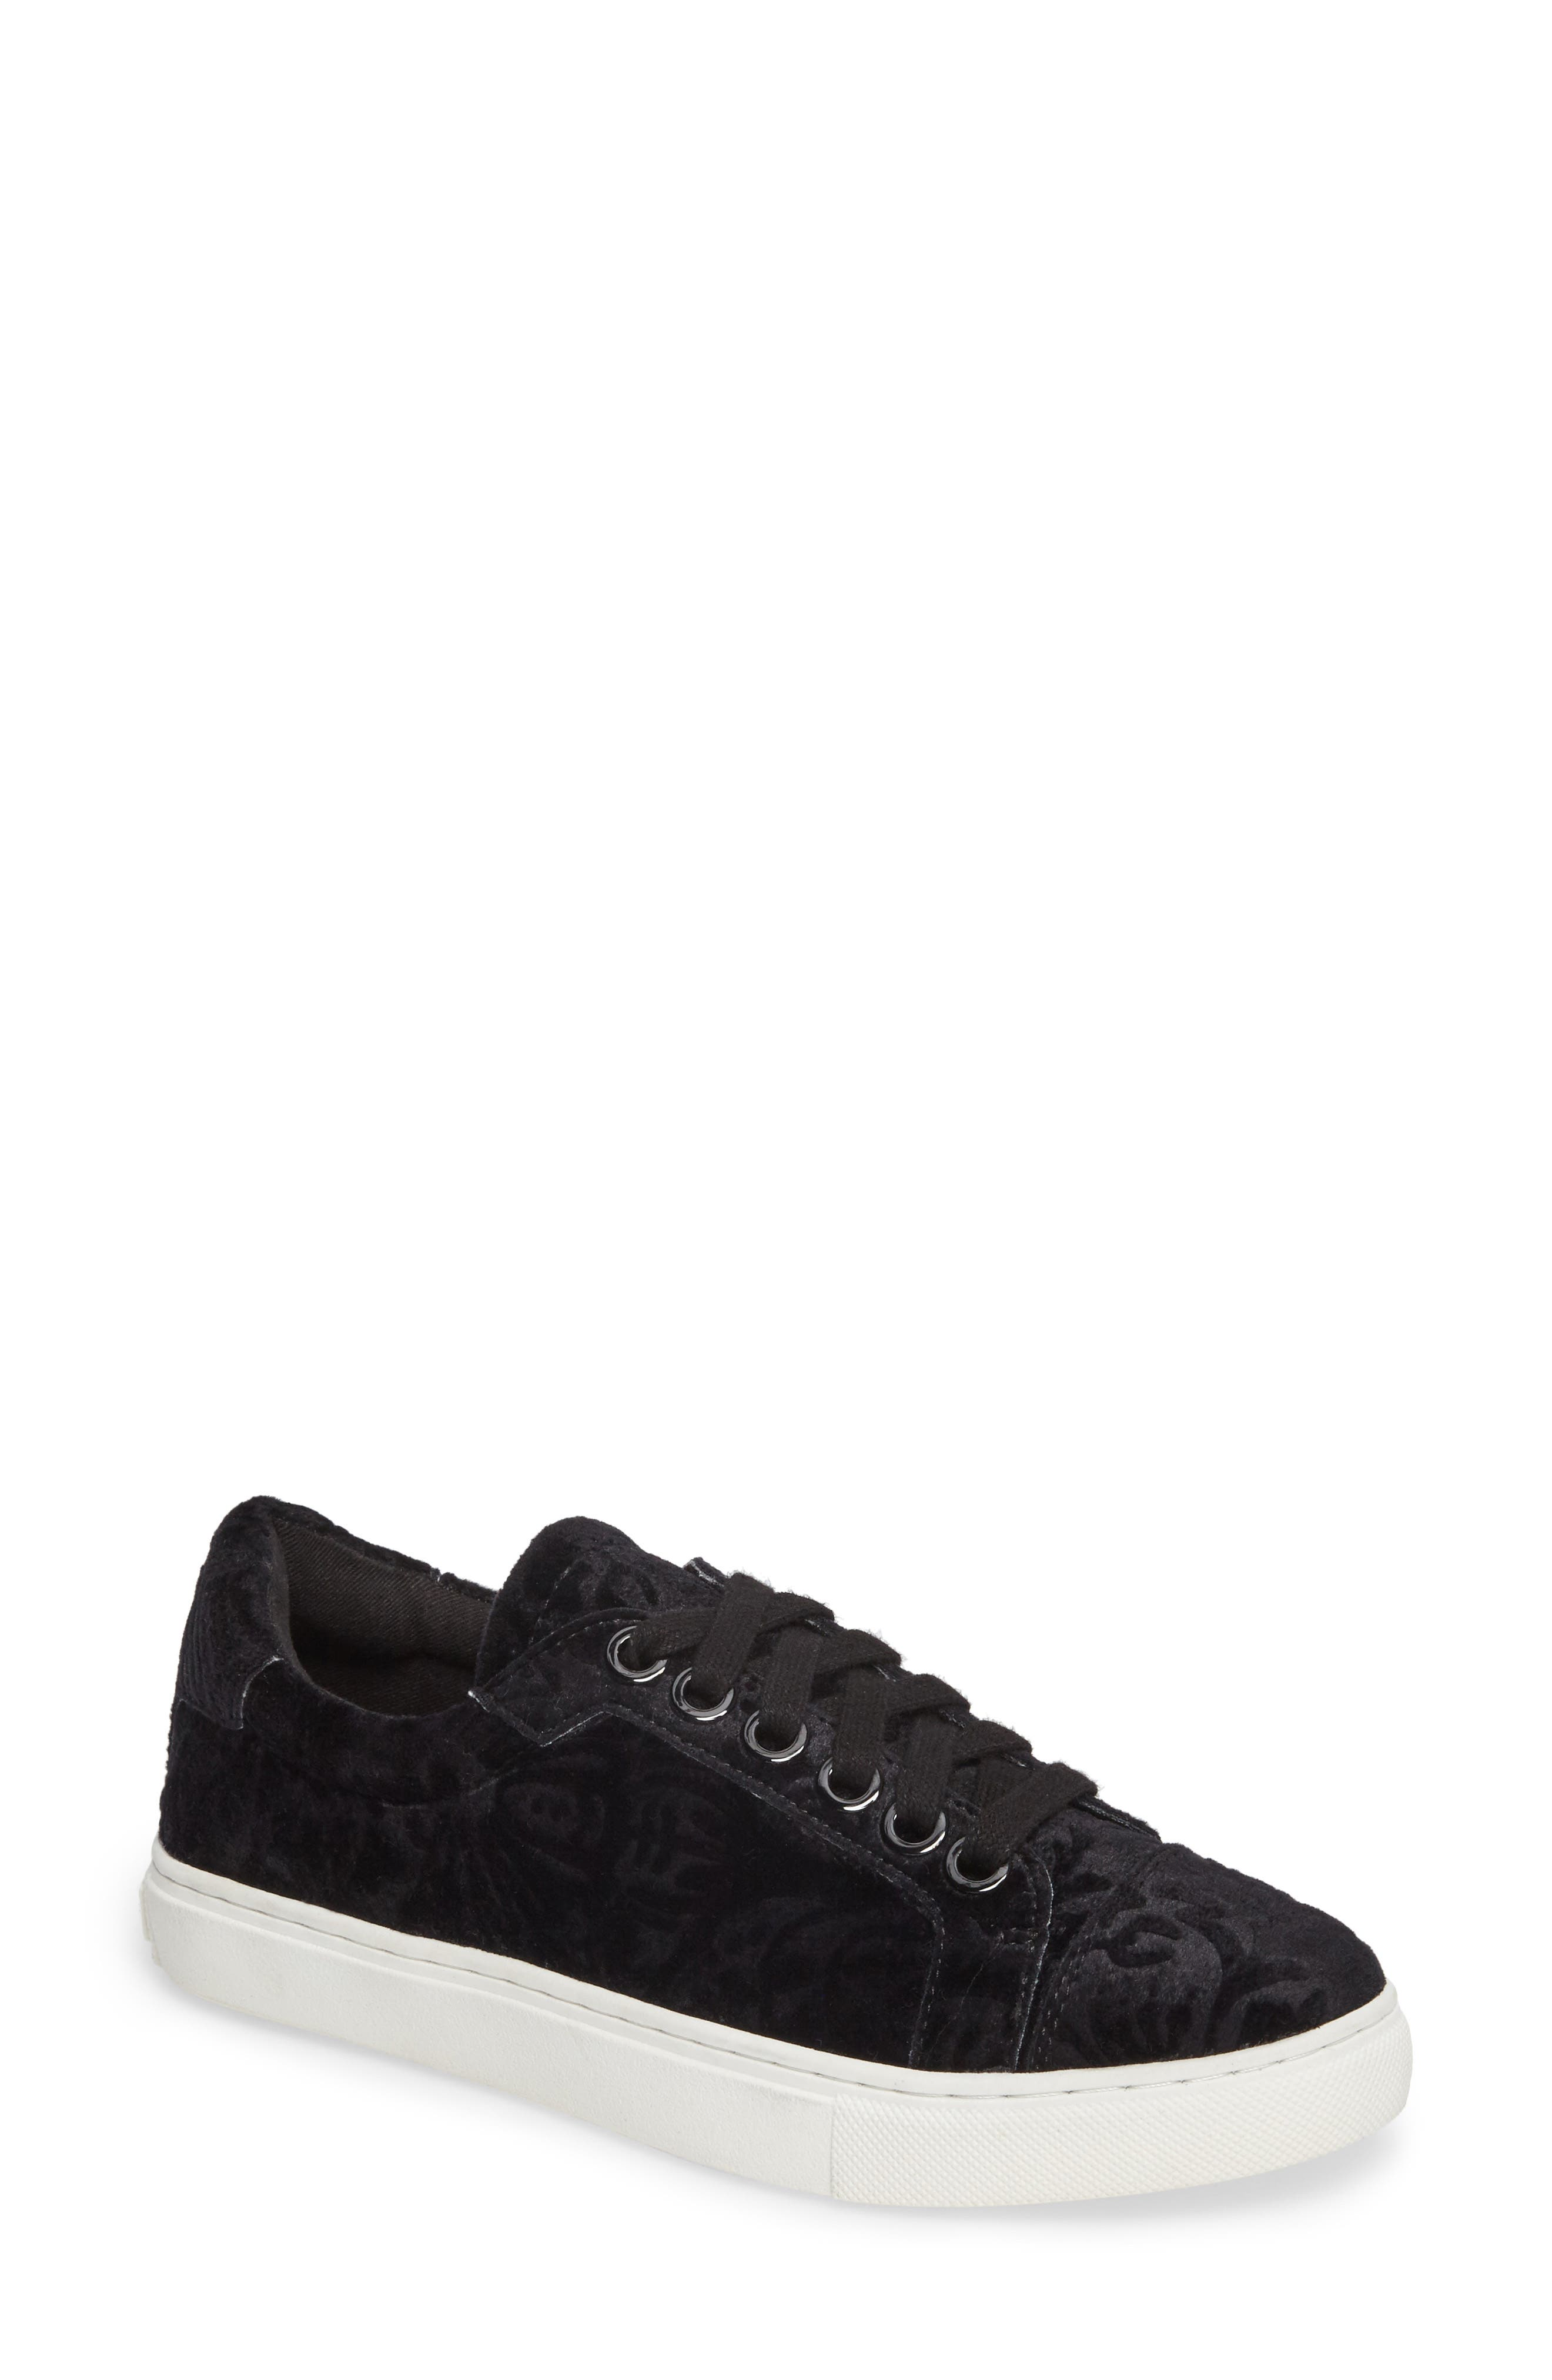 Rebecca Minkoff Bleecker Too Sneaker (Women)